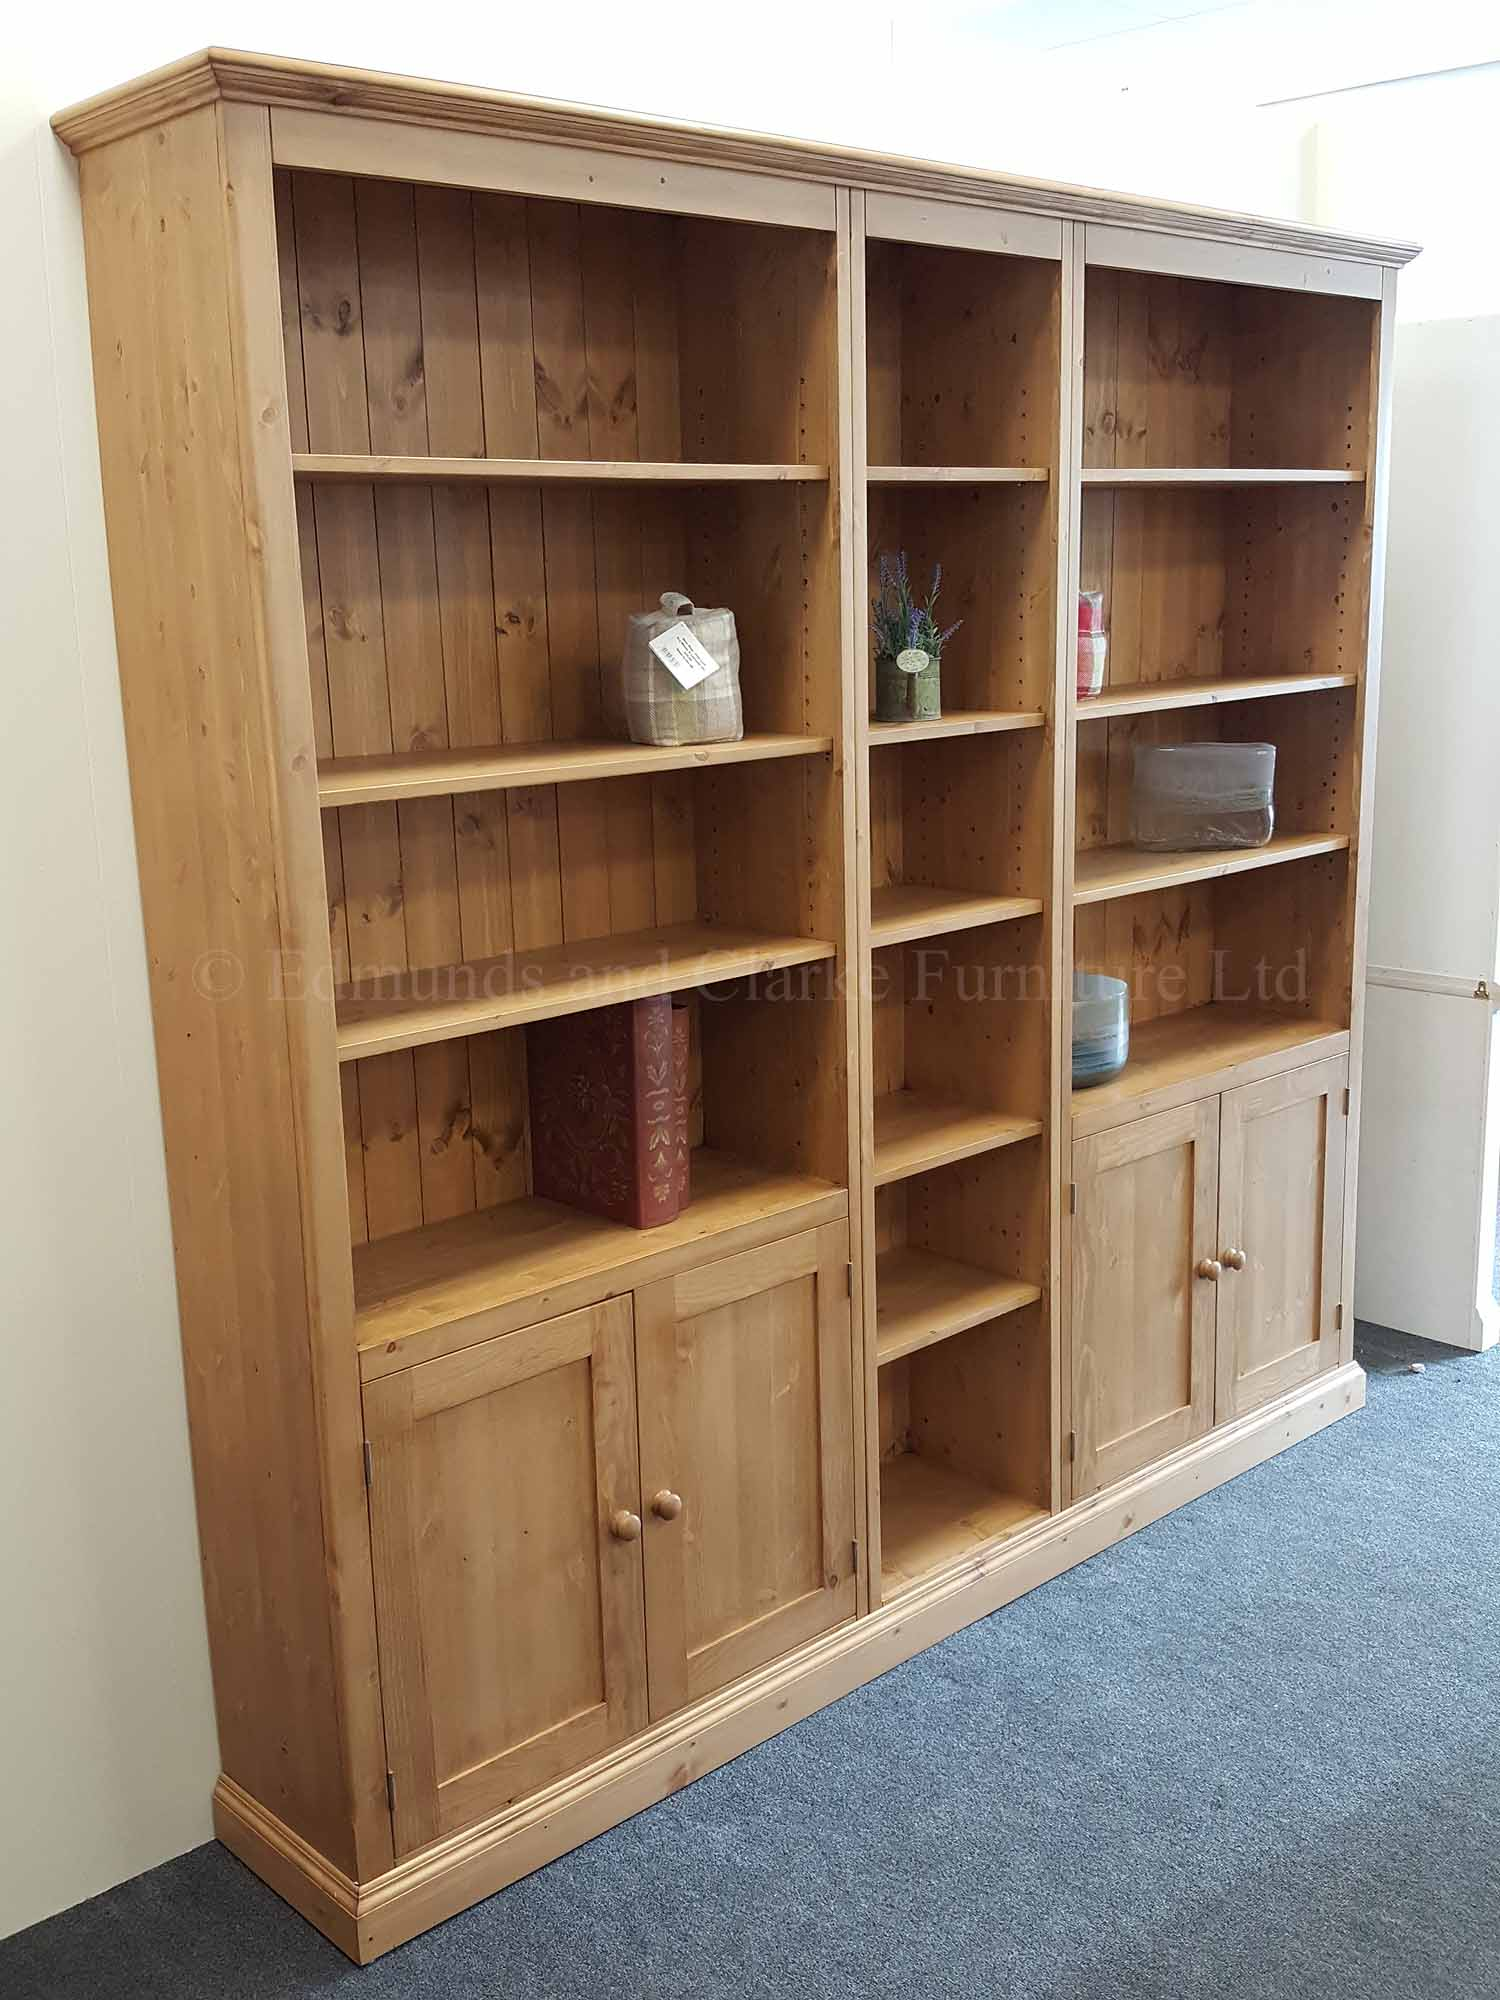 Wide 3 three part bookcase with cupboards and open shelves 230cm wide